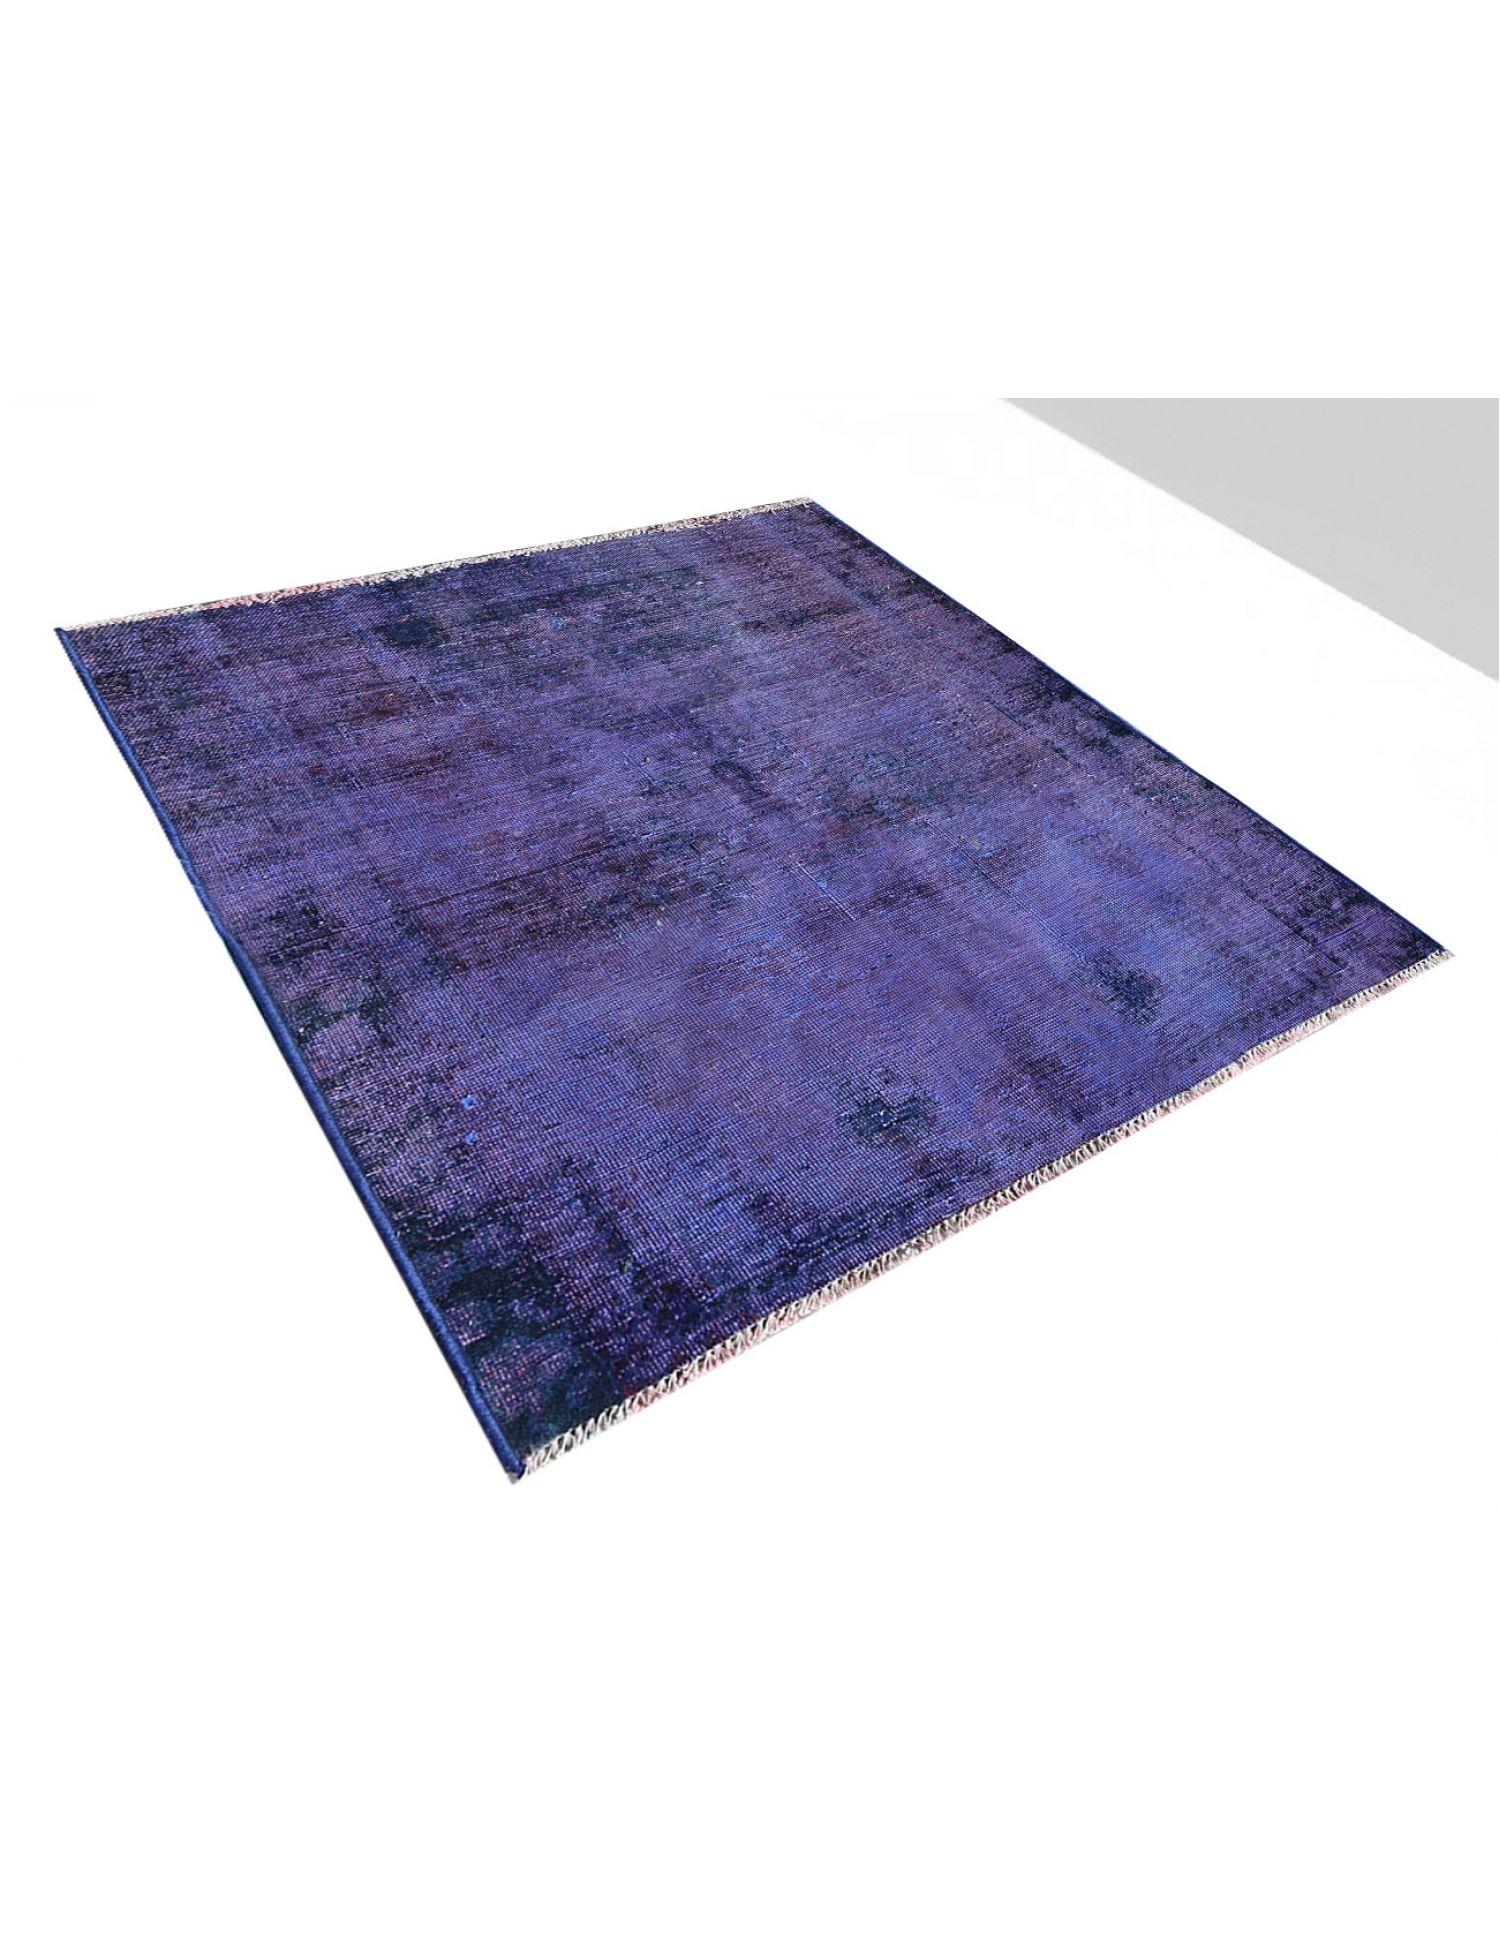 Vintage Carpet  blue <br/>122 x 122 cm